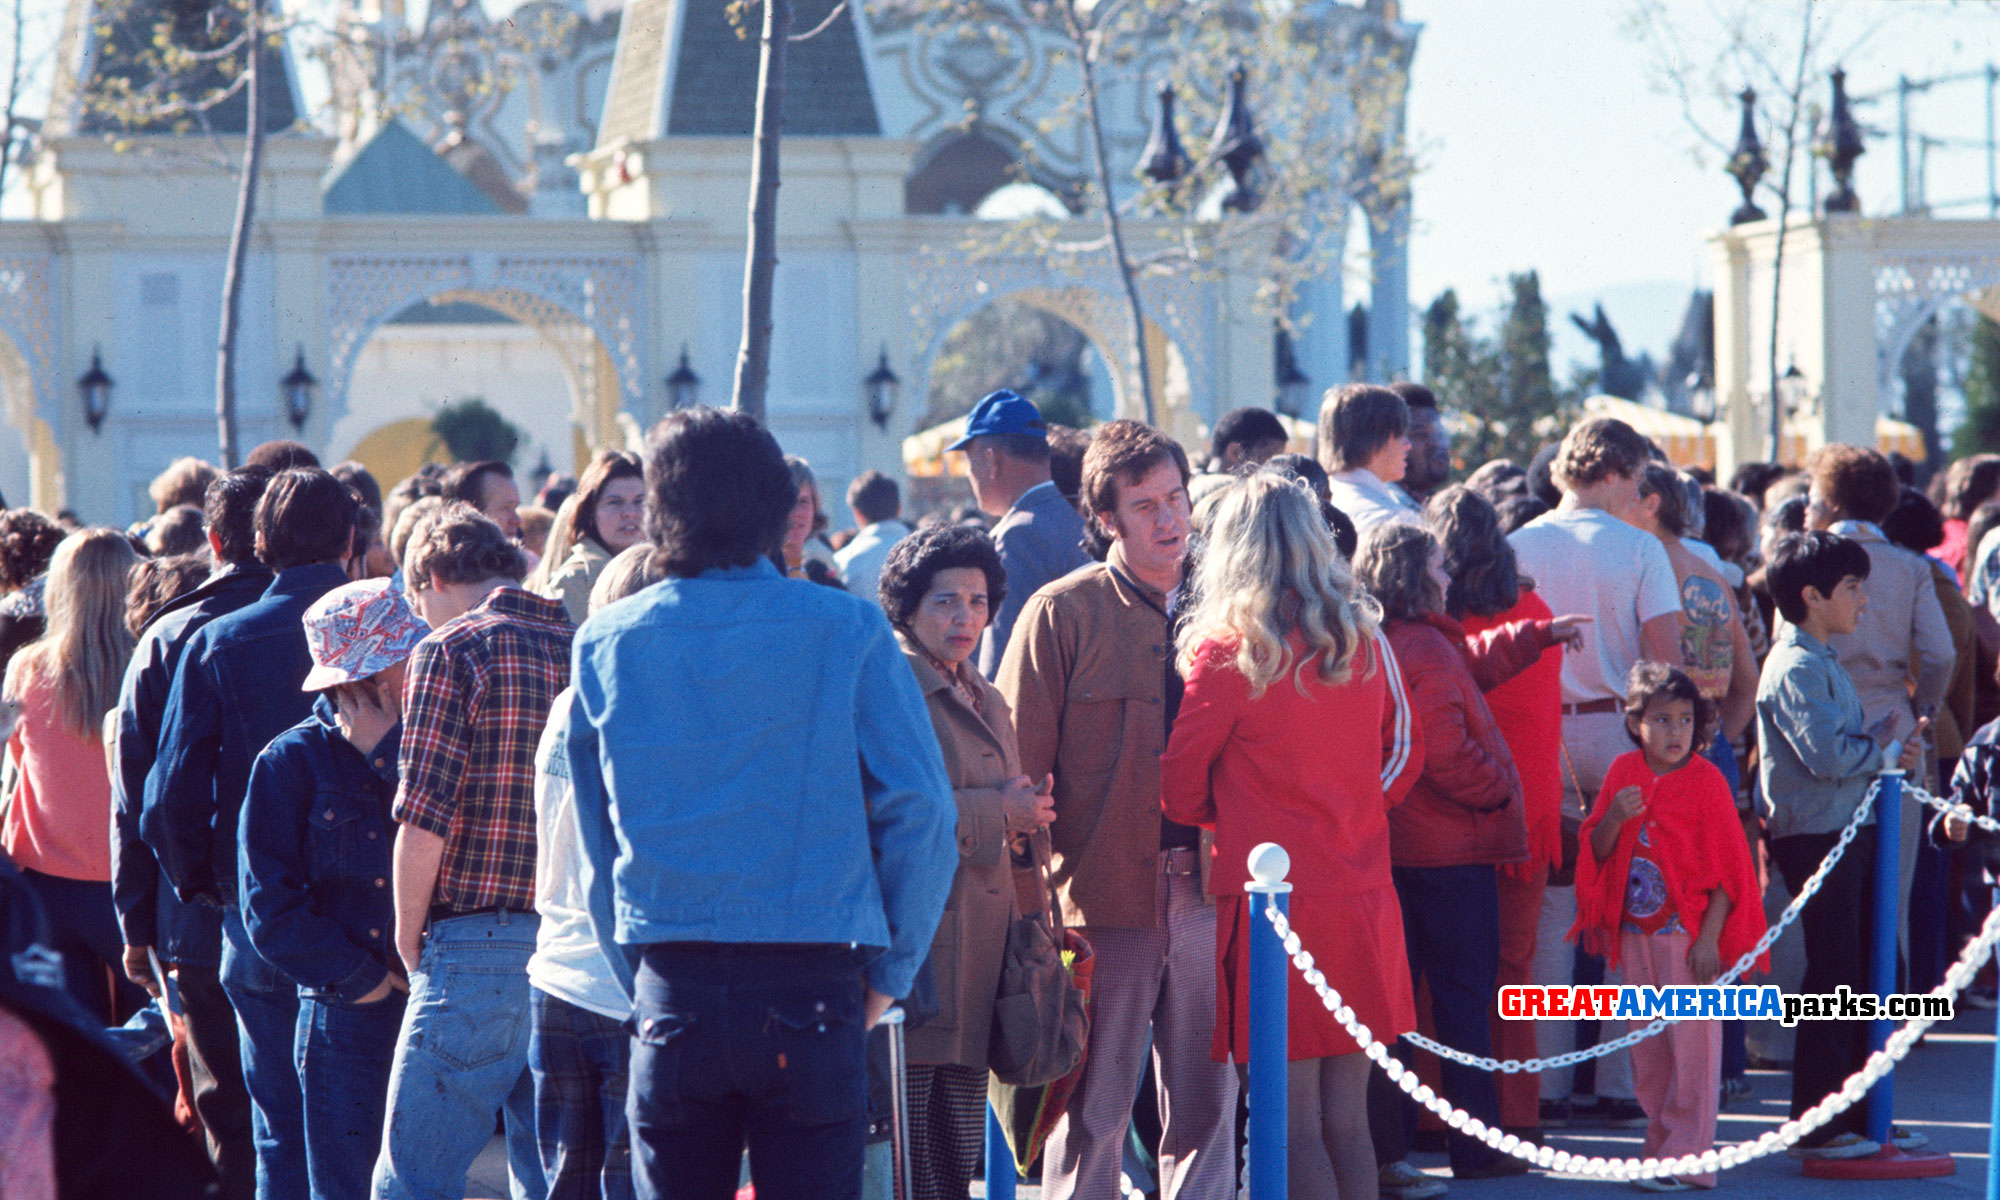 Crowds eagerly await opening day at Marriott's Great America, Santa Clara, CA on the morning of March 20, 1976.